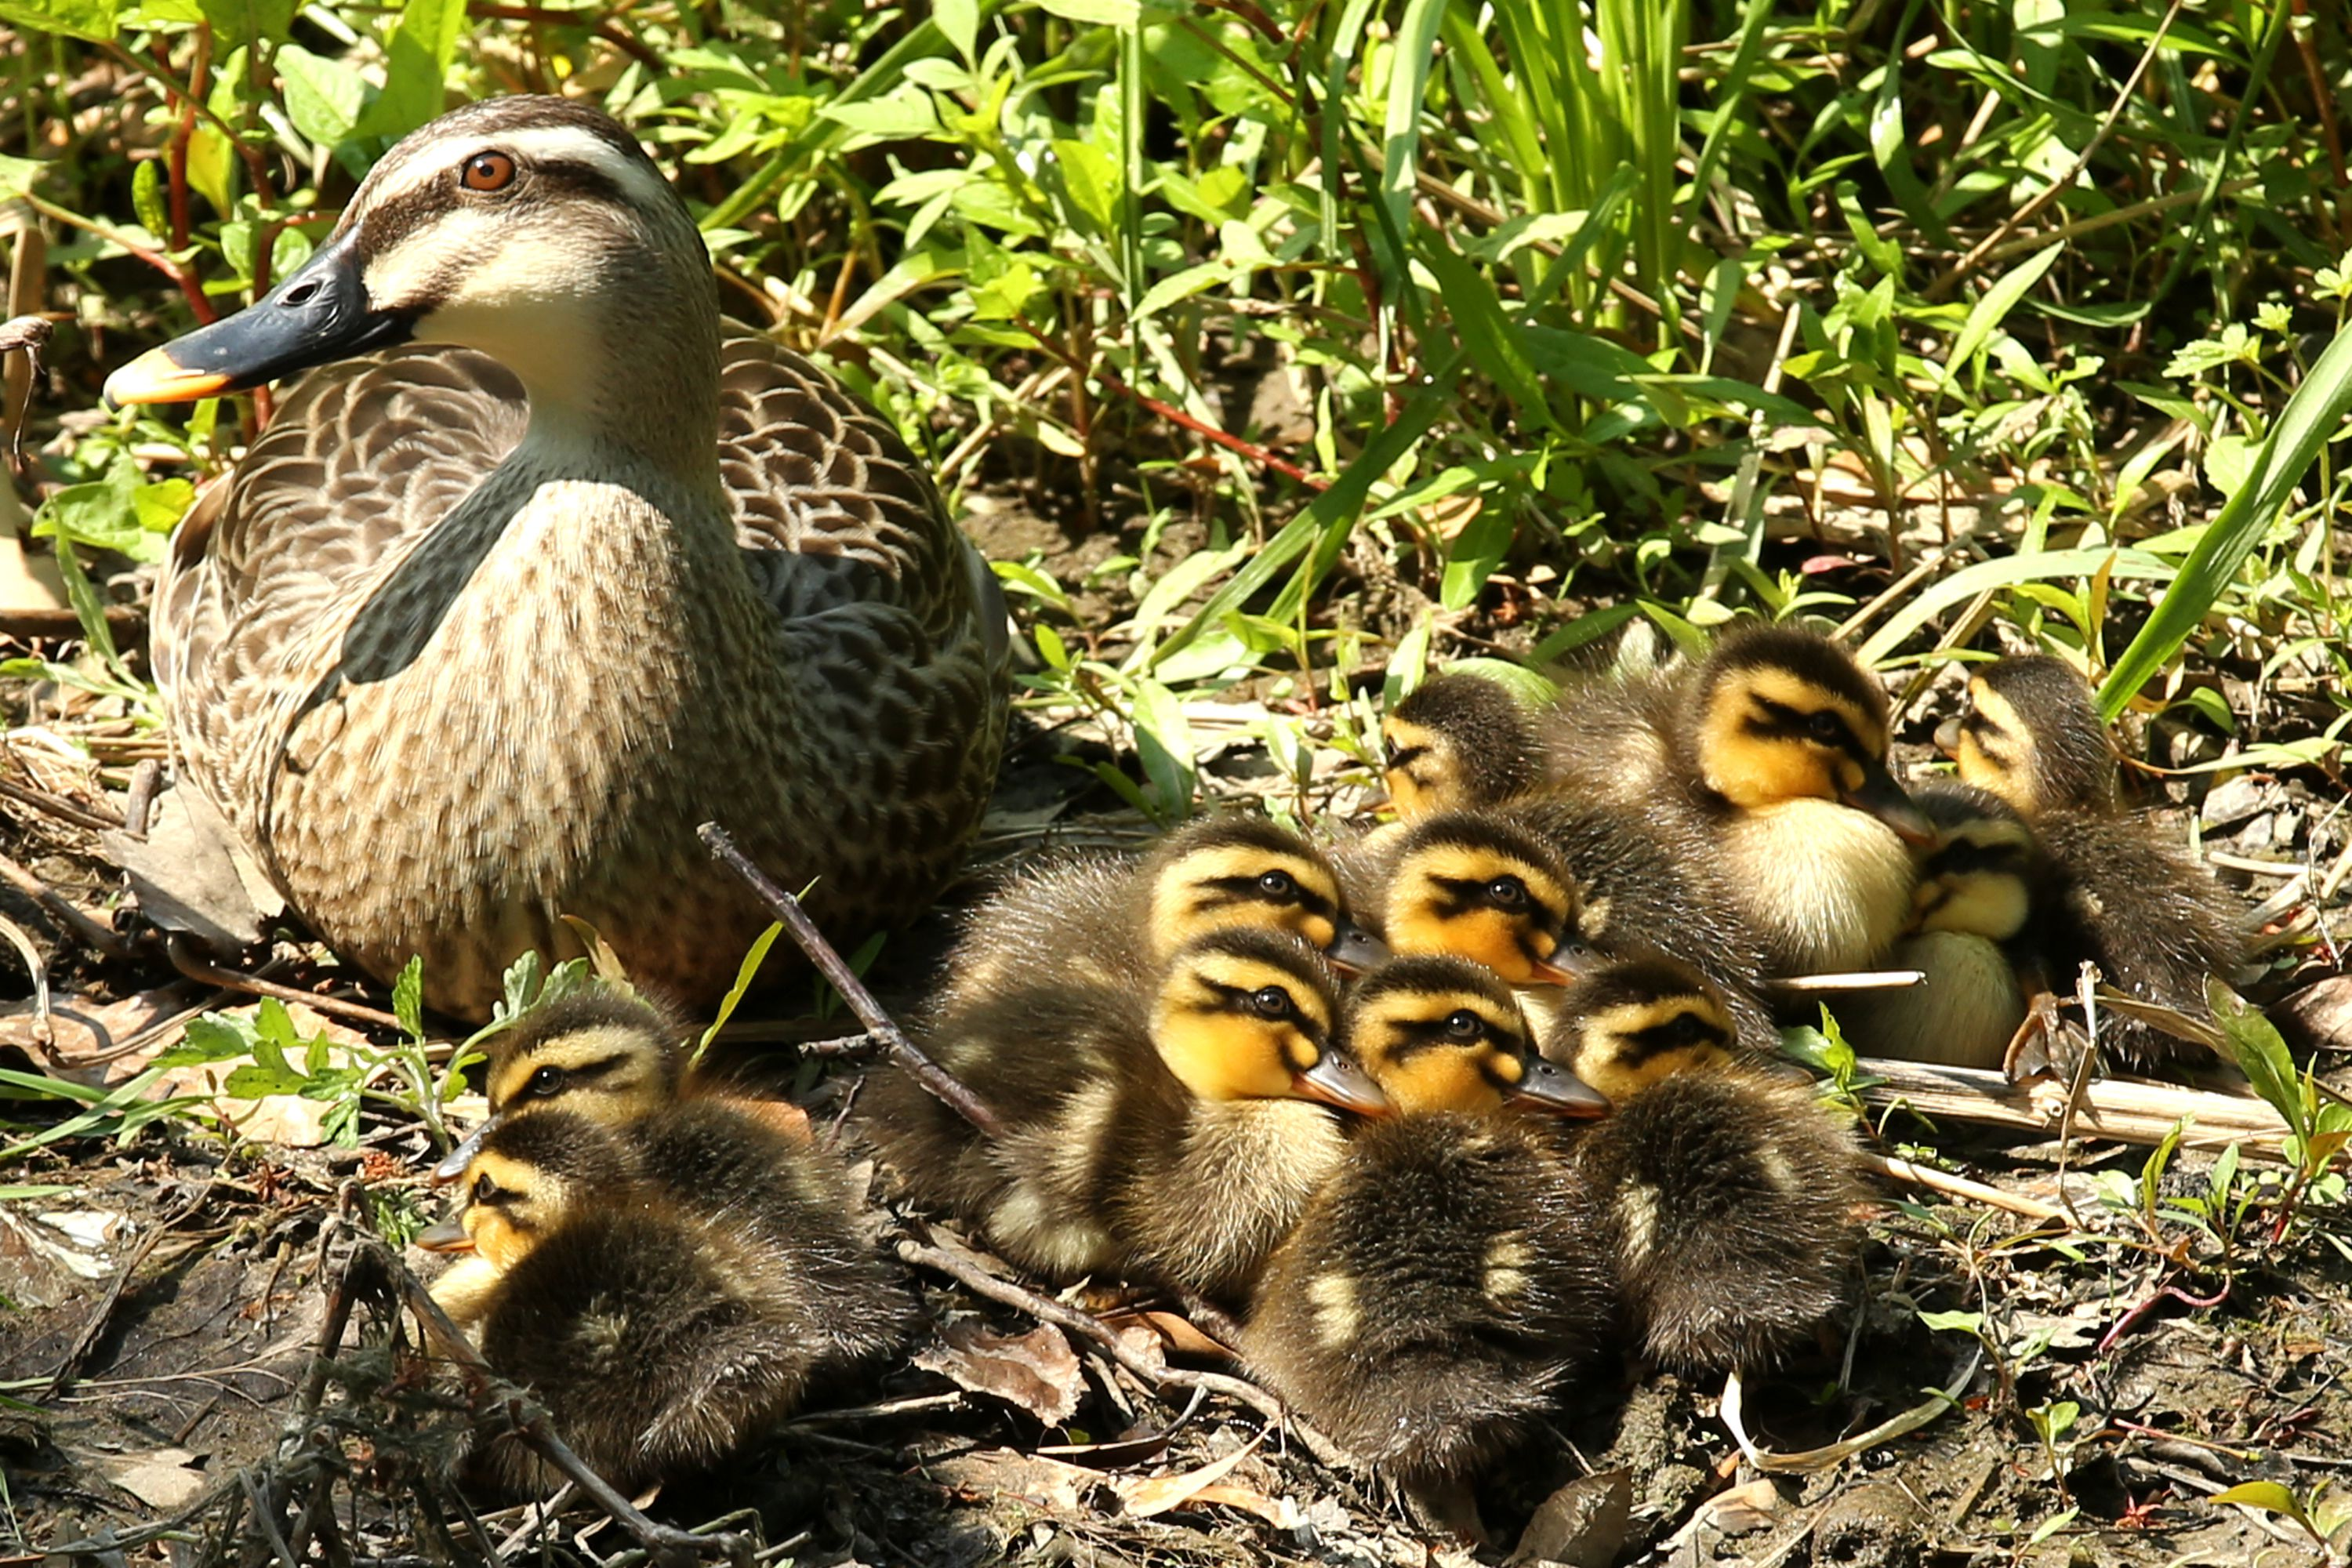 A mother duck and her 11 ducklings